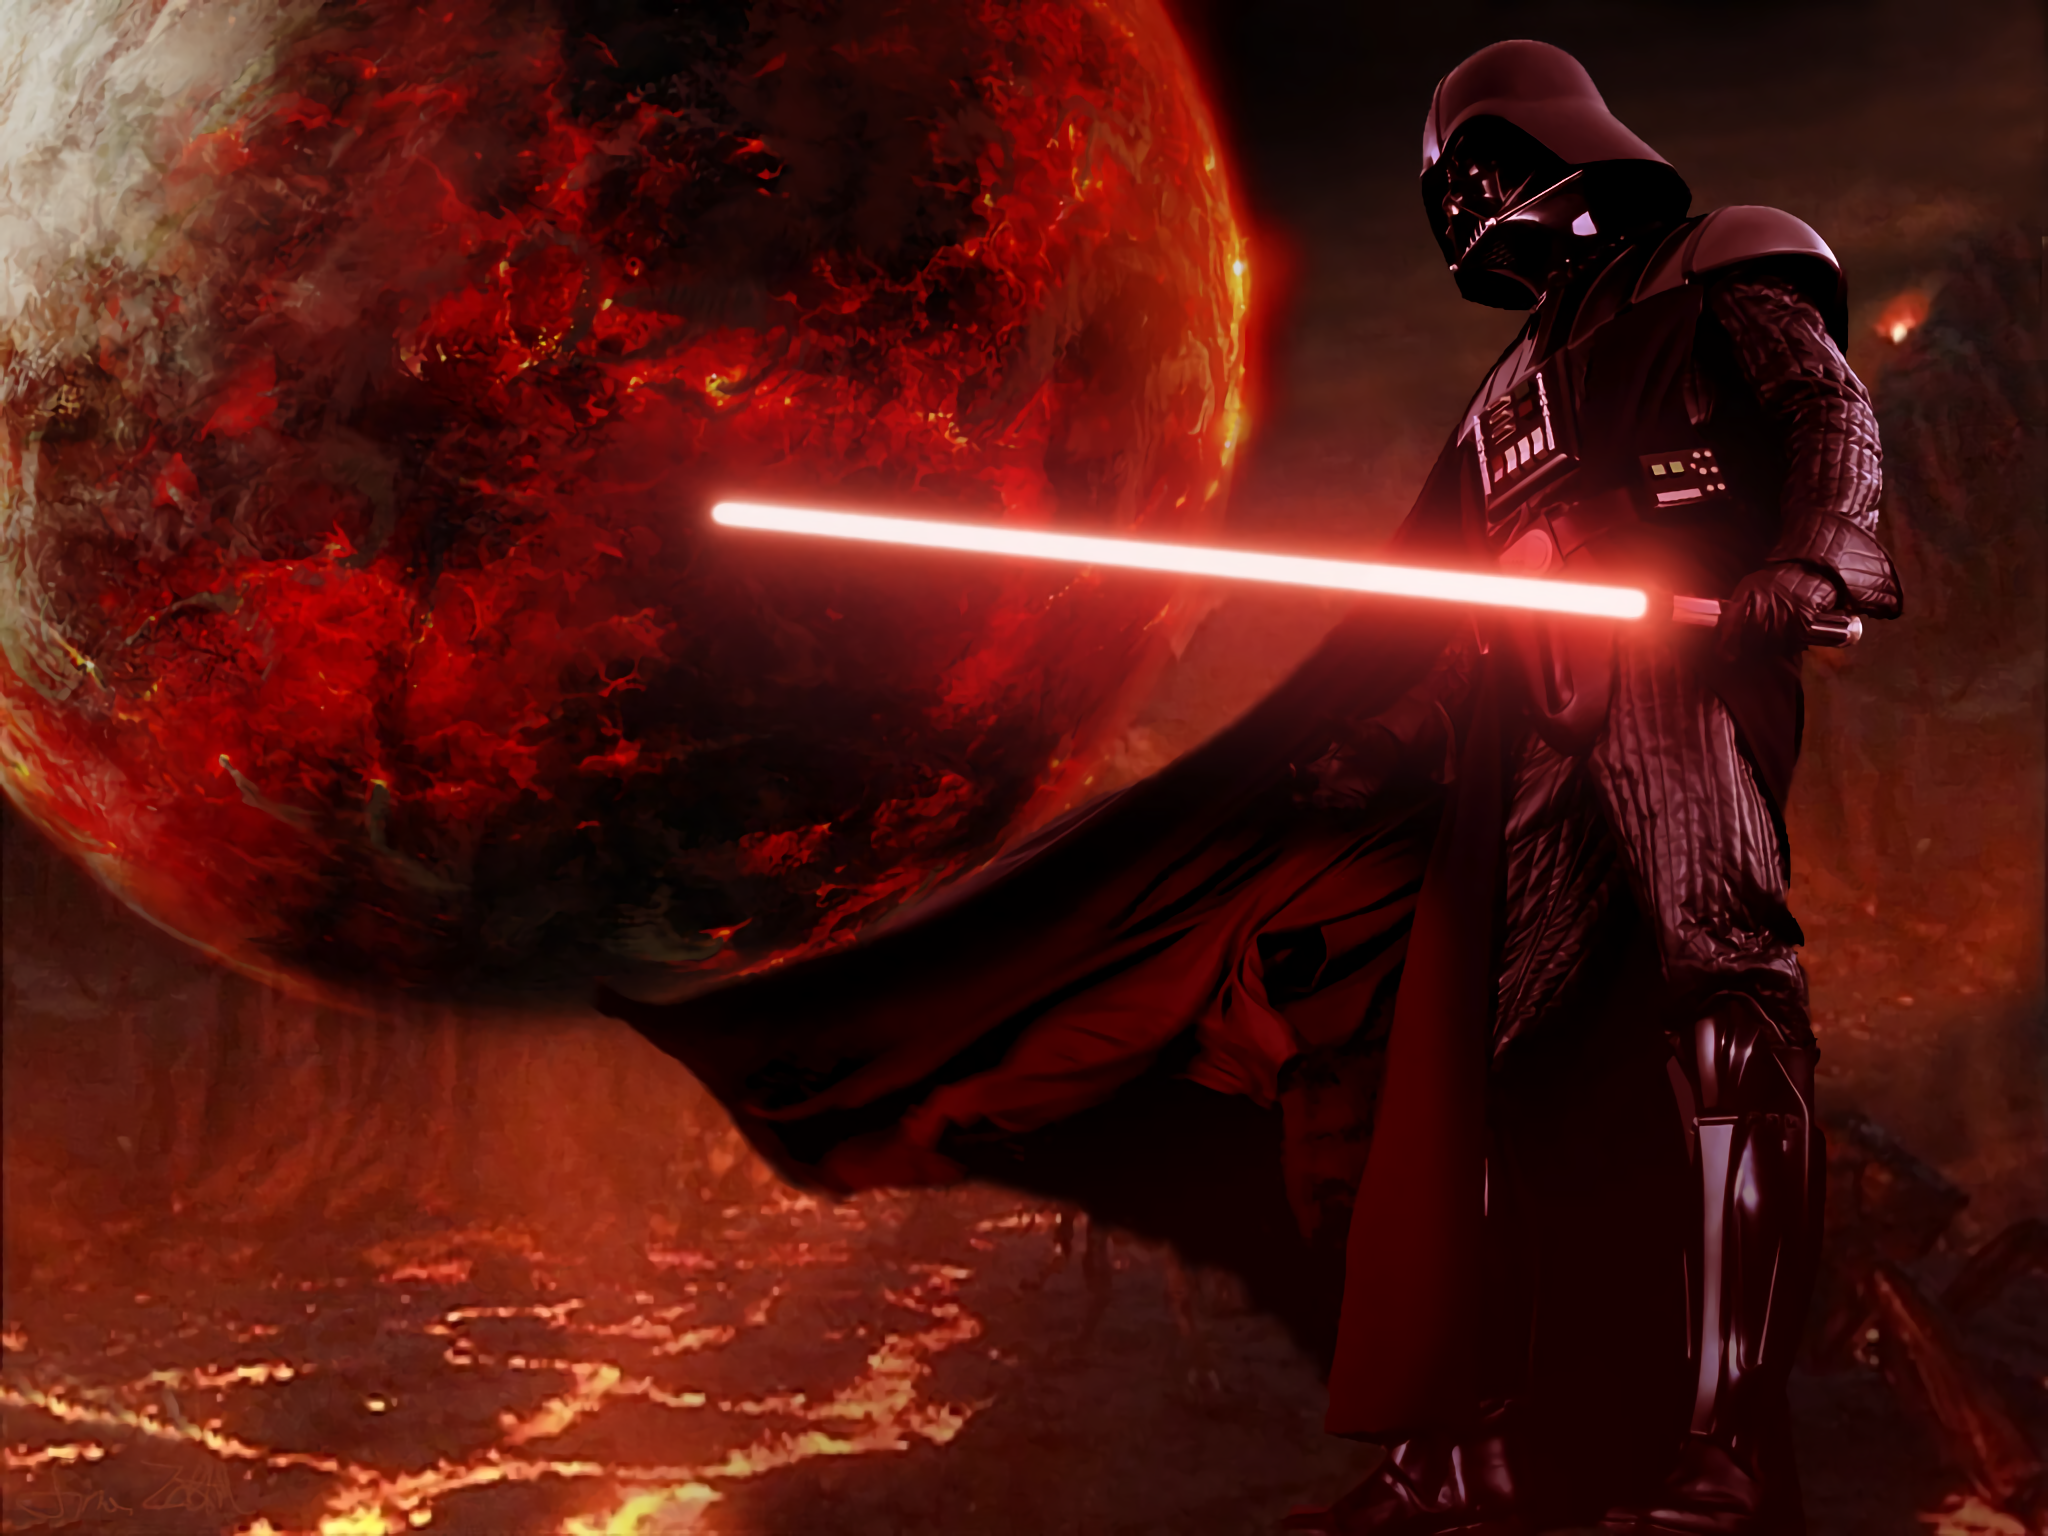 325 Darth Vader Hd Wallpapers Background Images Wallpaper Abyss